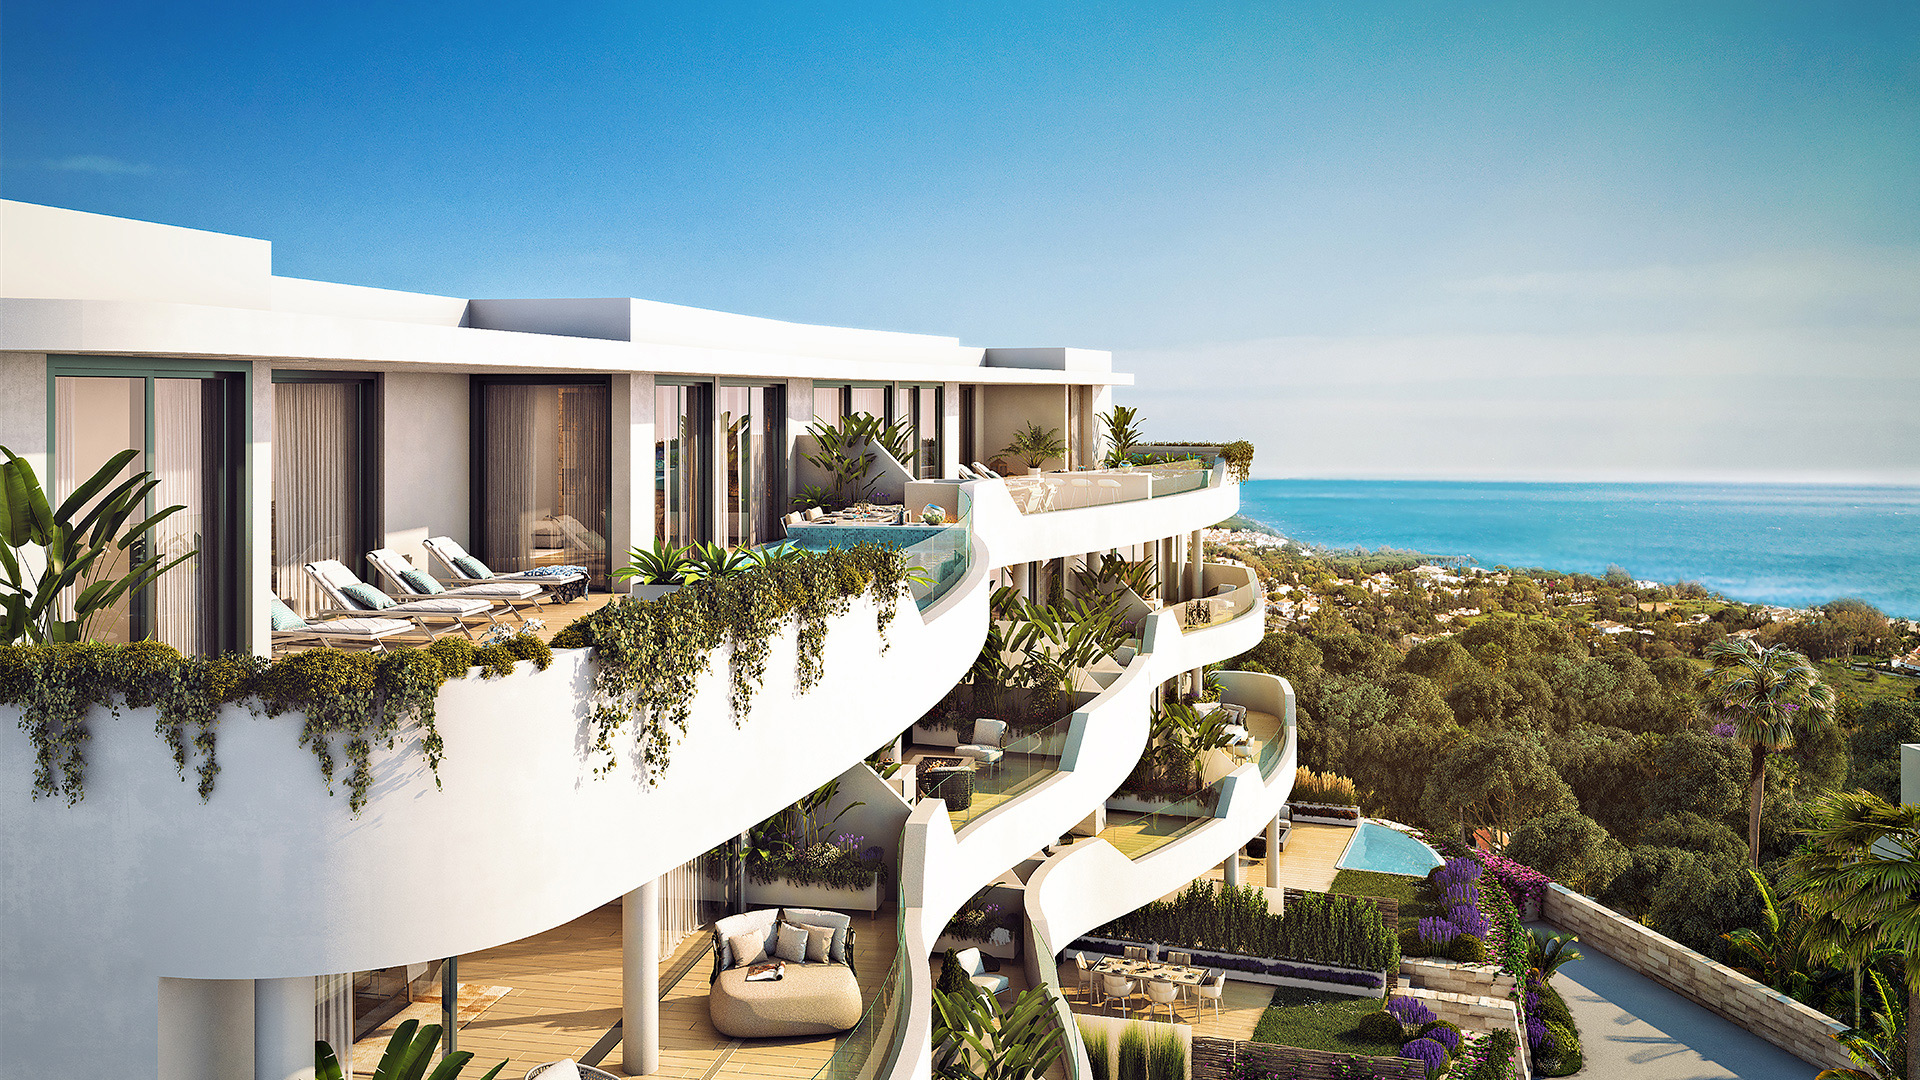 Sunset Bay Village - Modern Villas in Estepona